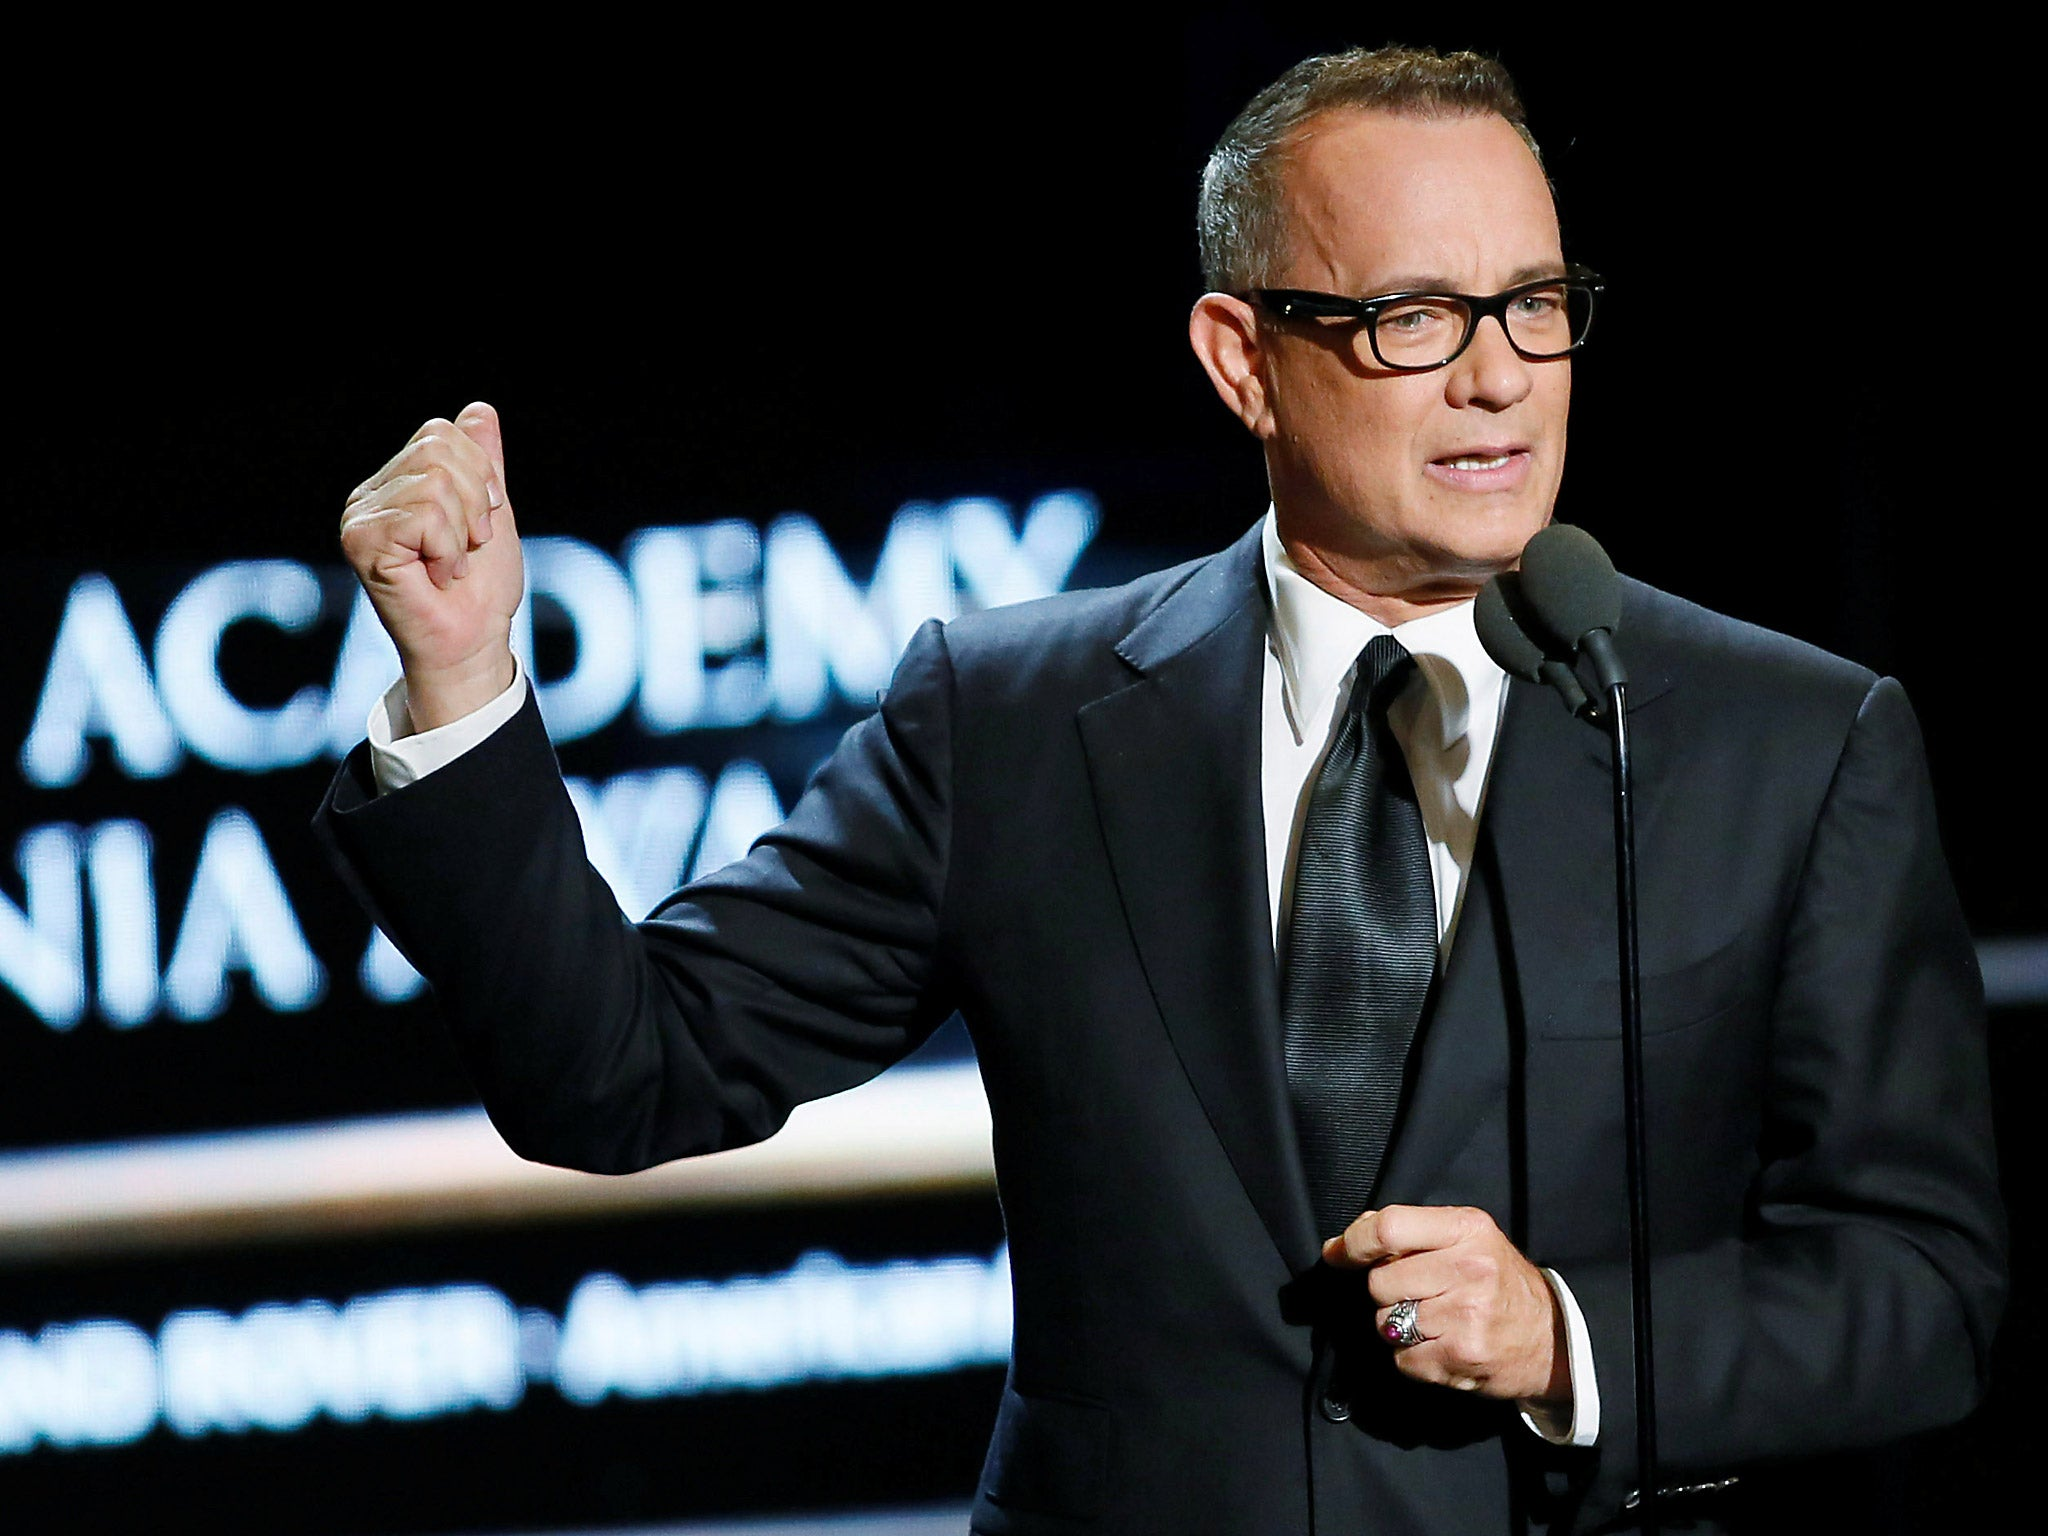 Tom Hanks Responds To Growing Calls For Him To Run For President In 2020 The Independent The Independent